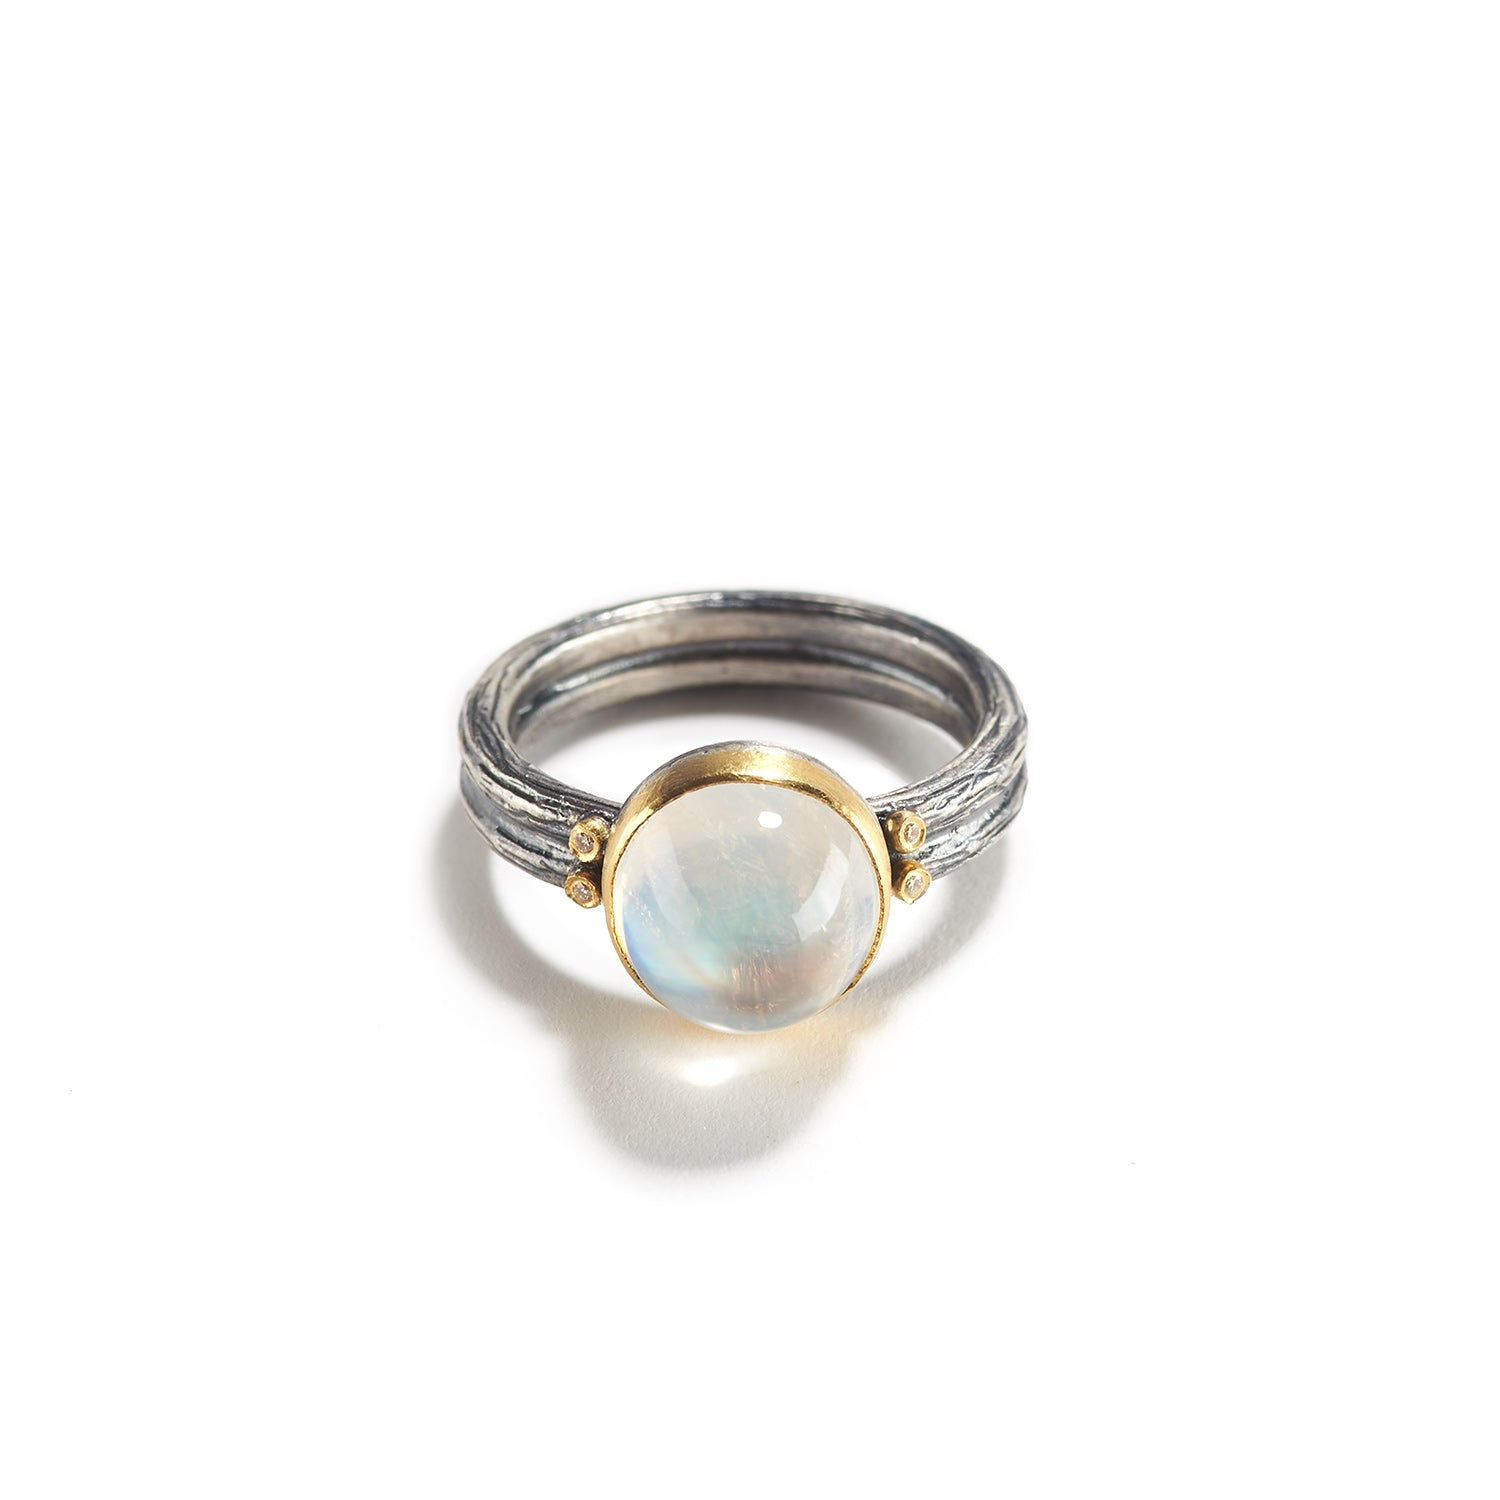 Moonstone, Diamond and Silver Ring